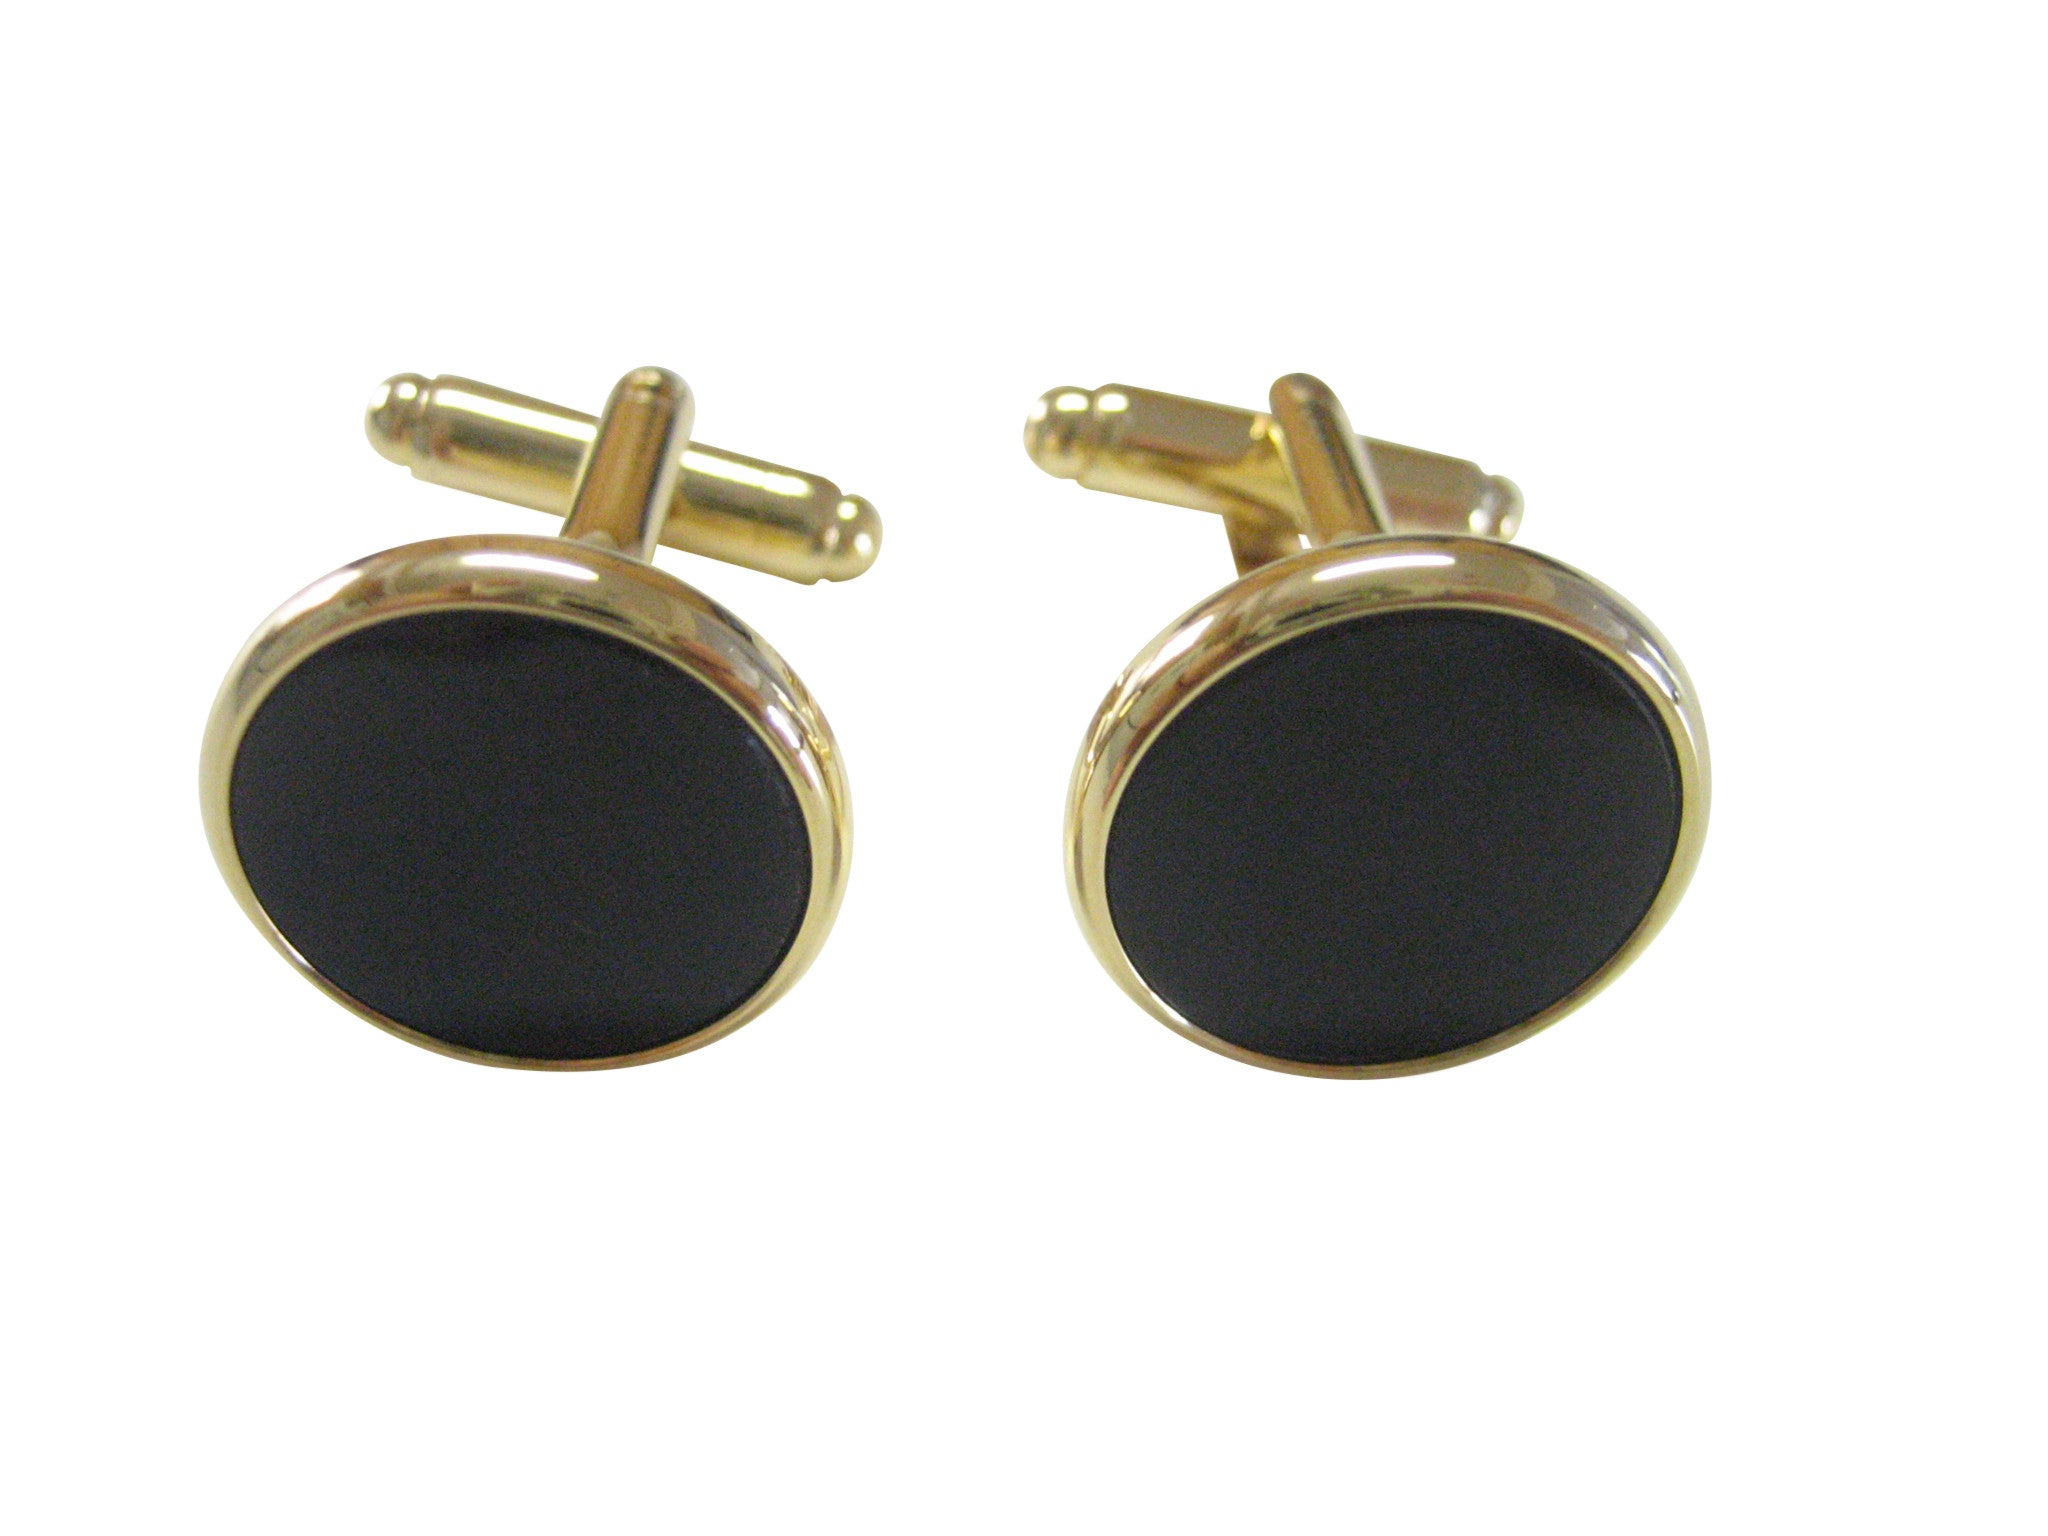 Classic Gold and Black Round Cufflinks